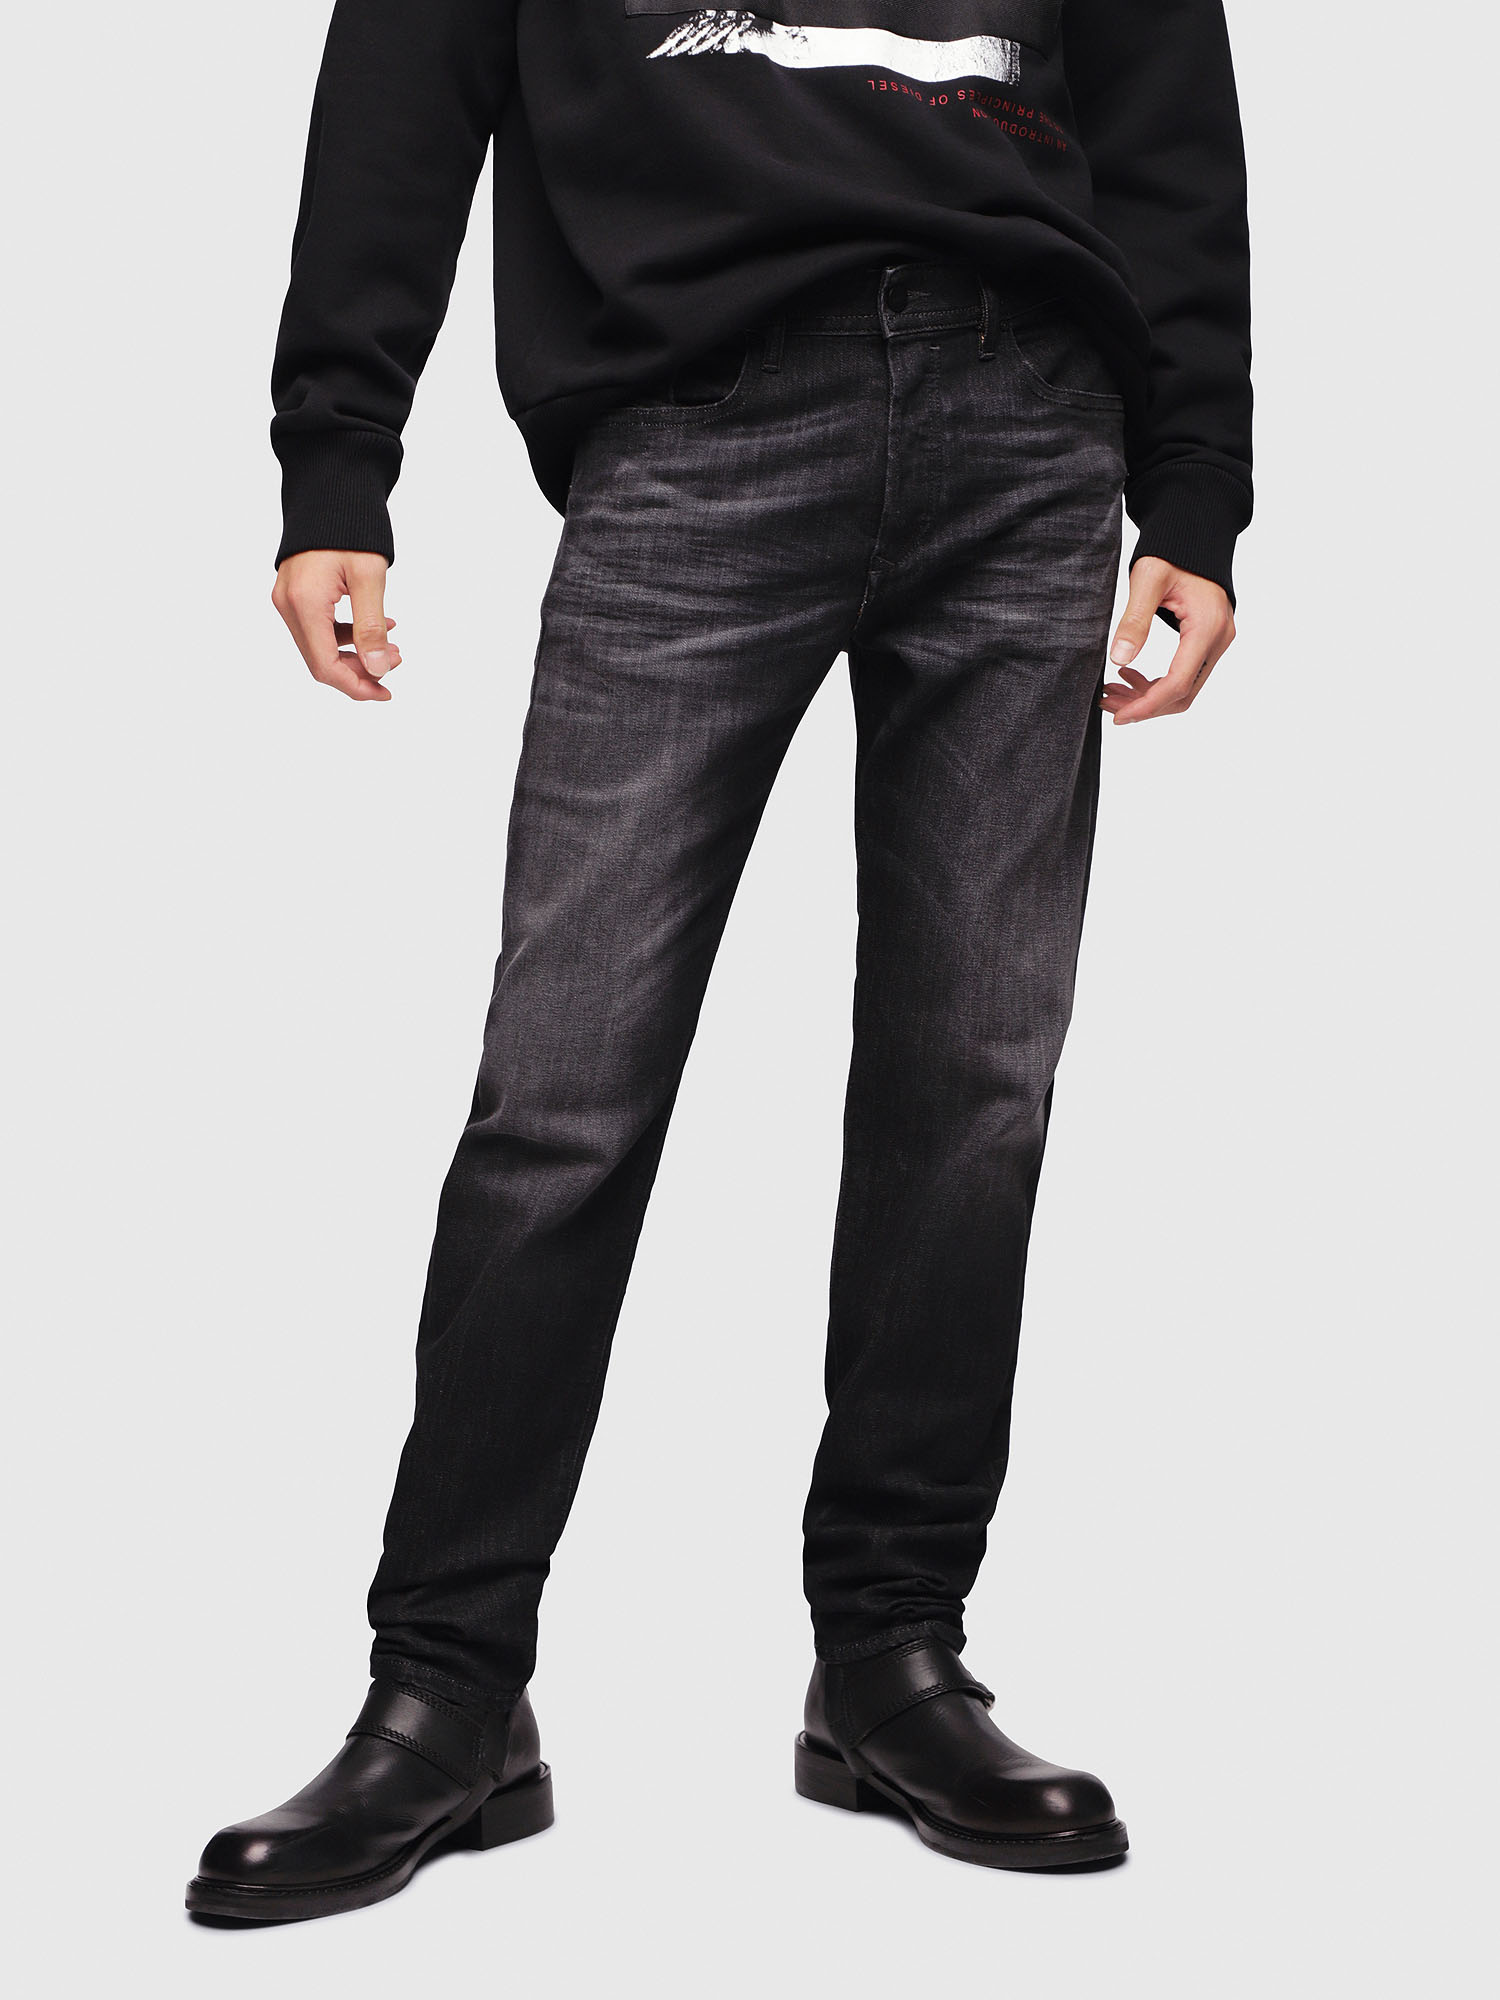 Diesel - Buster 087AM,  - Jeans - Image 1